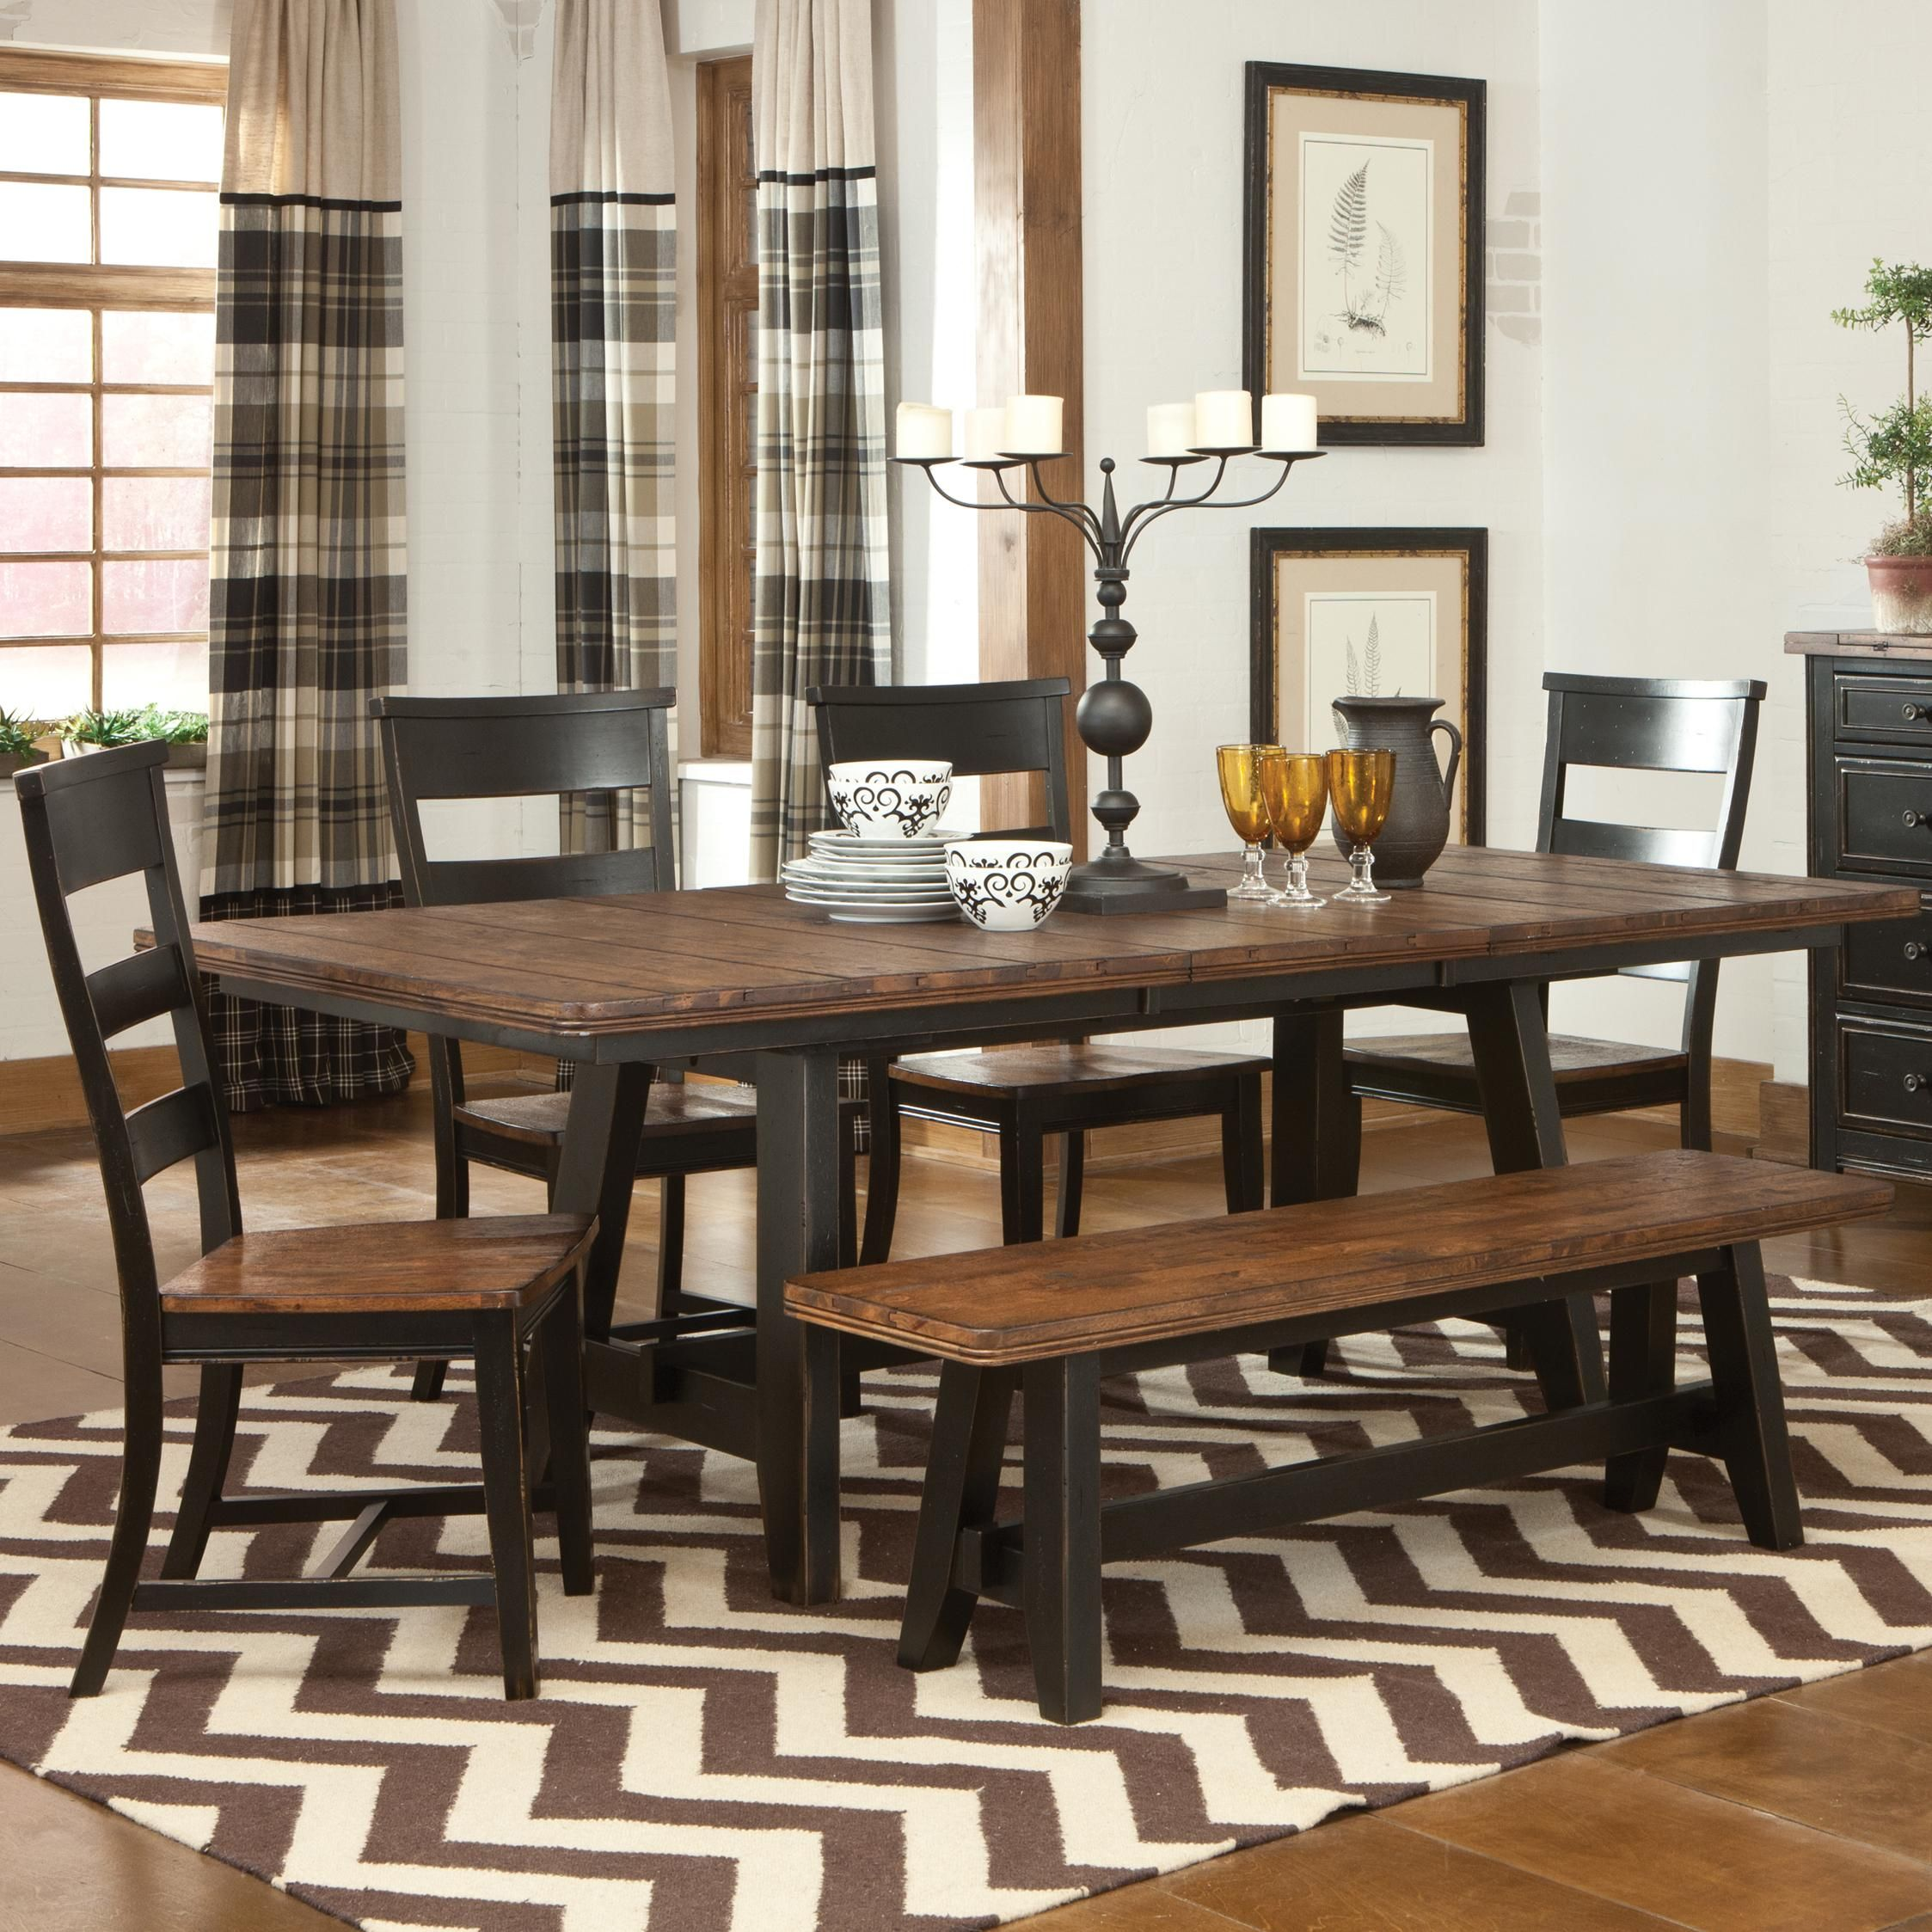 winchester 6 piece trestle table set by kalan furniture stuff intercon winchester 6 piece trestle table and ladder back chair set with backless dining bench godby home furnishings dining 5 piece set